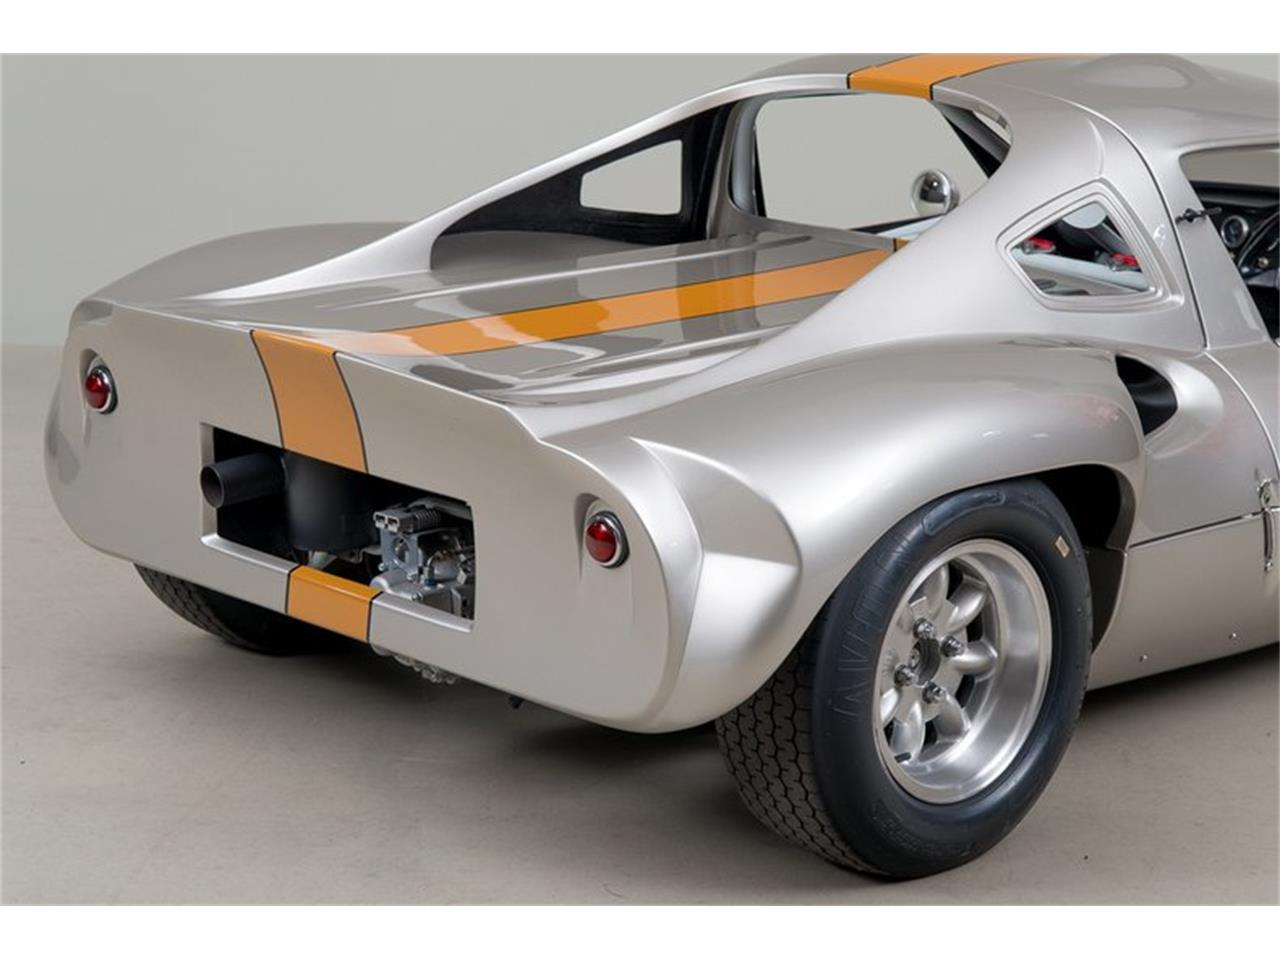 1967 Ginetta G12 for sale in Scotts Valley, CA – photo 54